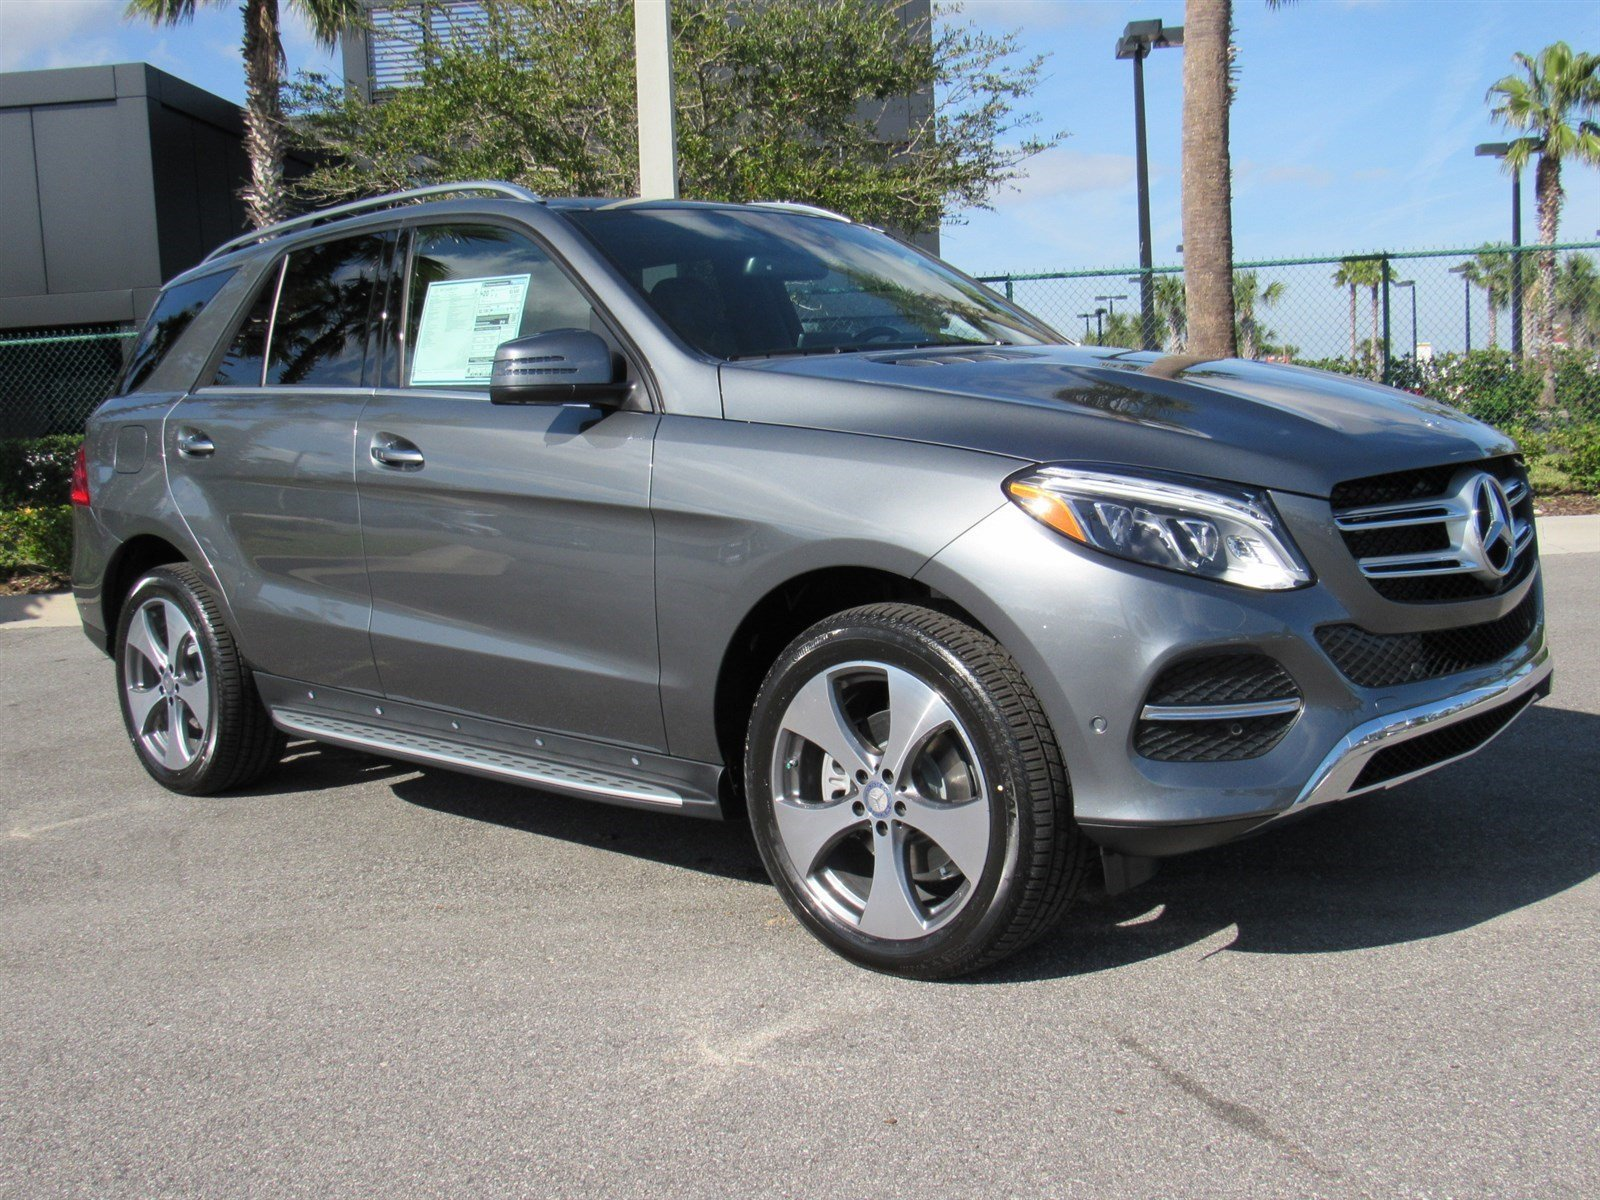 New 2017 mercedes benz gle gle350 suv in daytona beach for 2017 mercedes benz gle350 4matic price